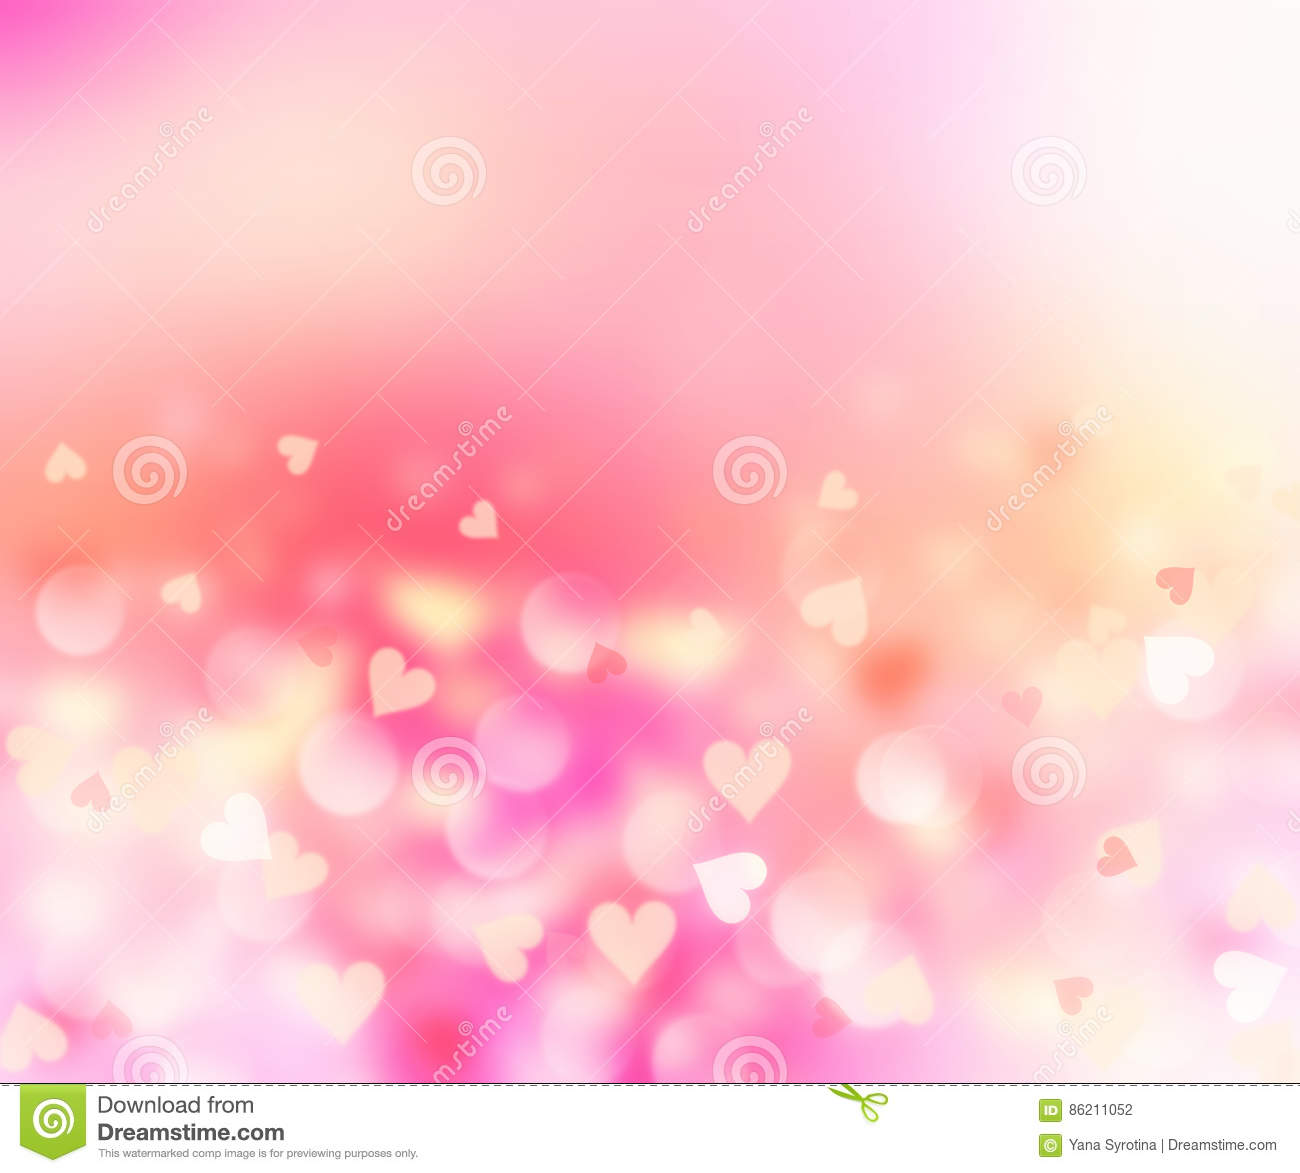 Romantic hearts blurred on pink background.Valentine card.